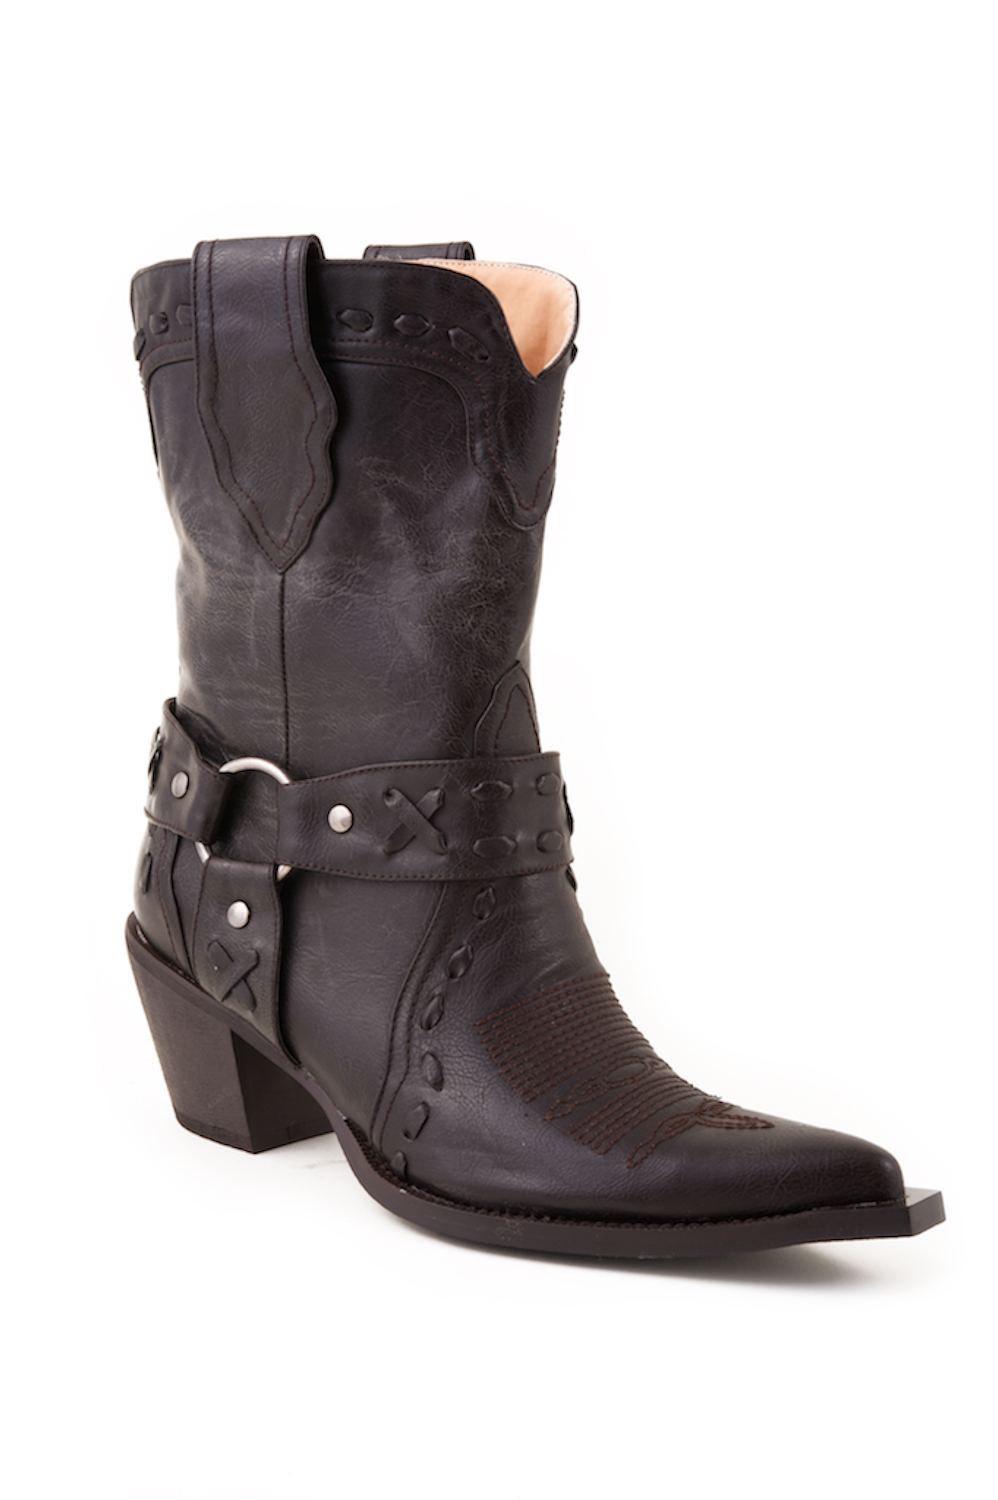 nib roper womens brown leather snip toe harness western